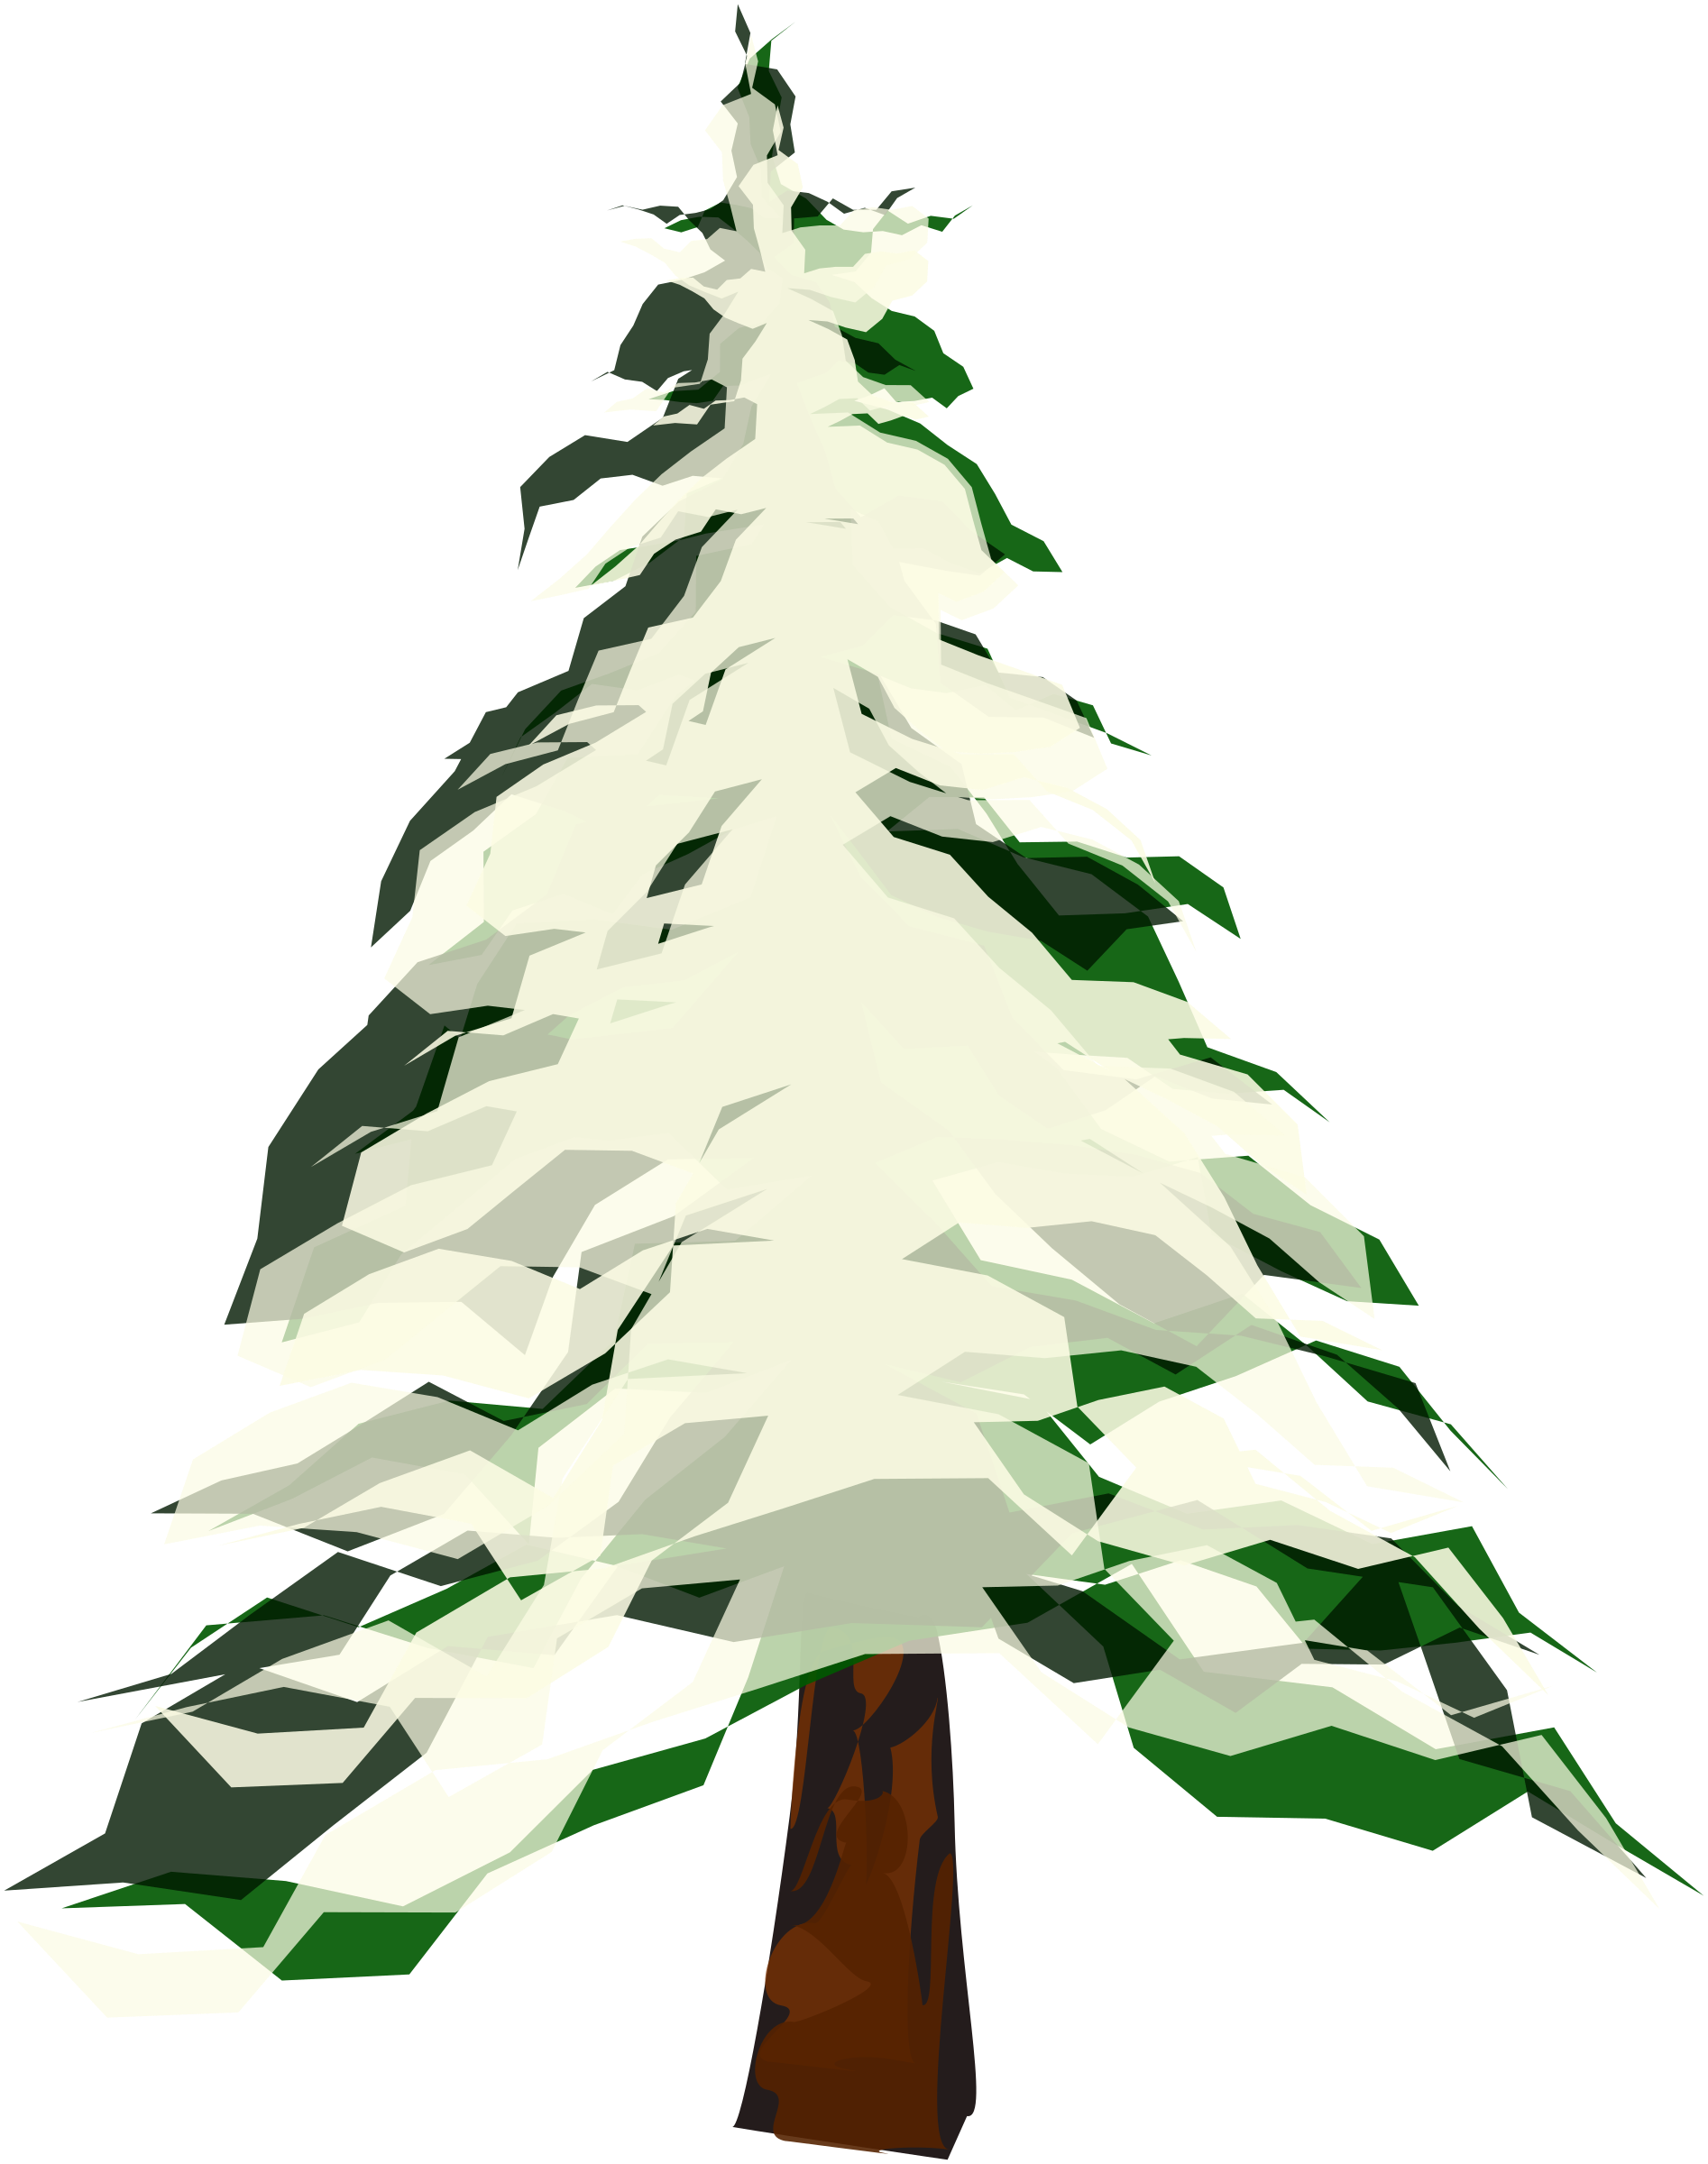 Winter tree clipart transparent image free download Clipart - Winter Tree 2 image free download